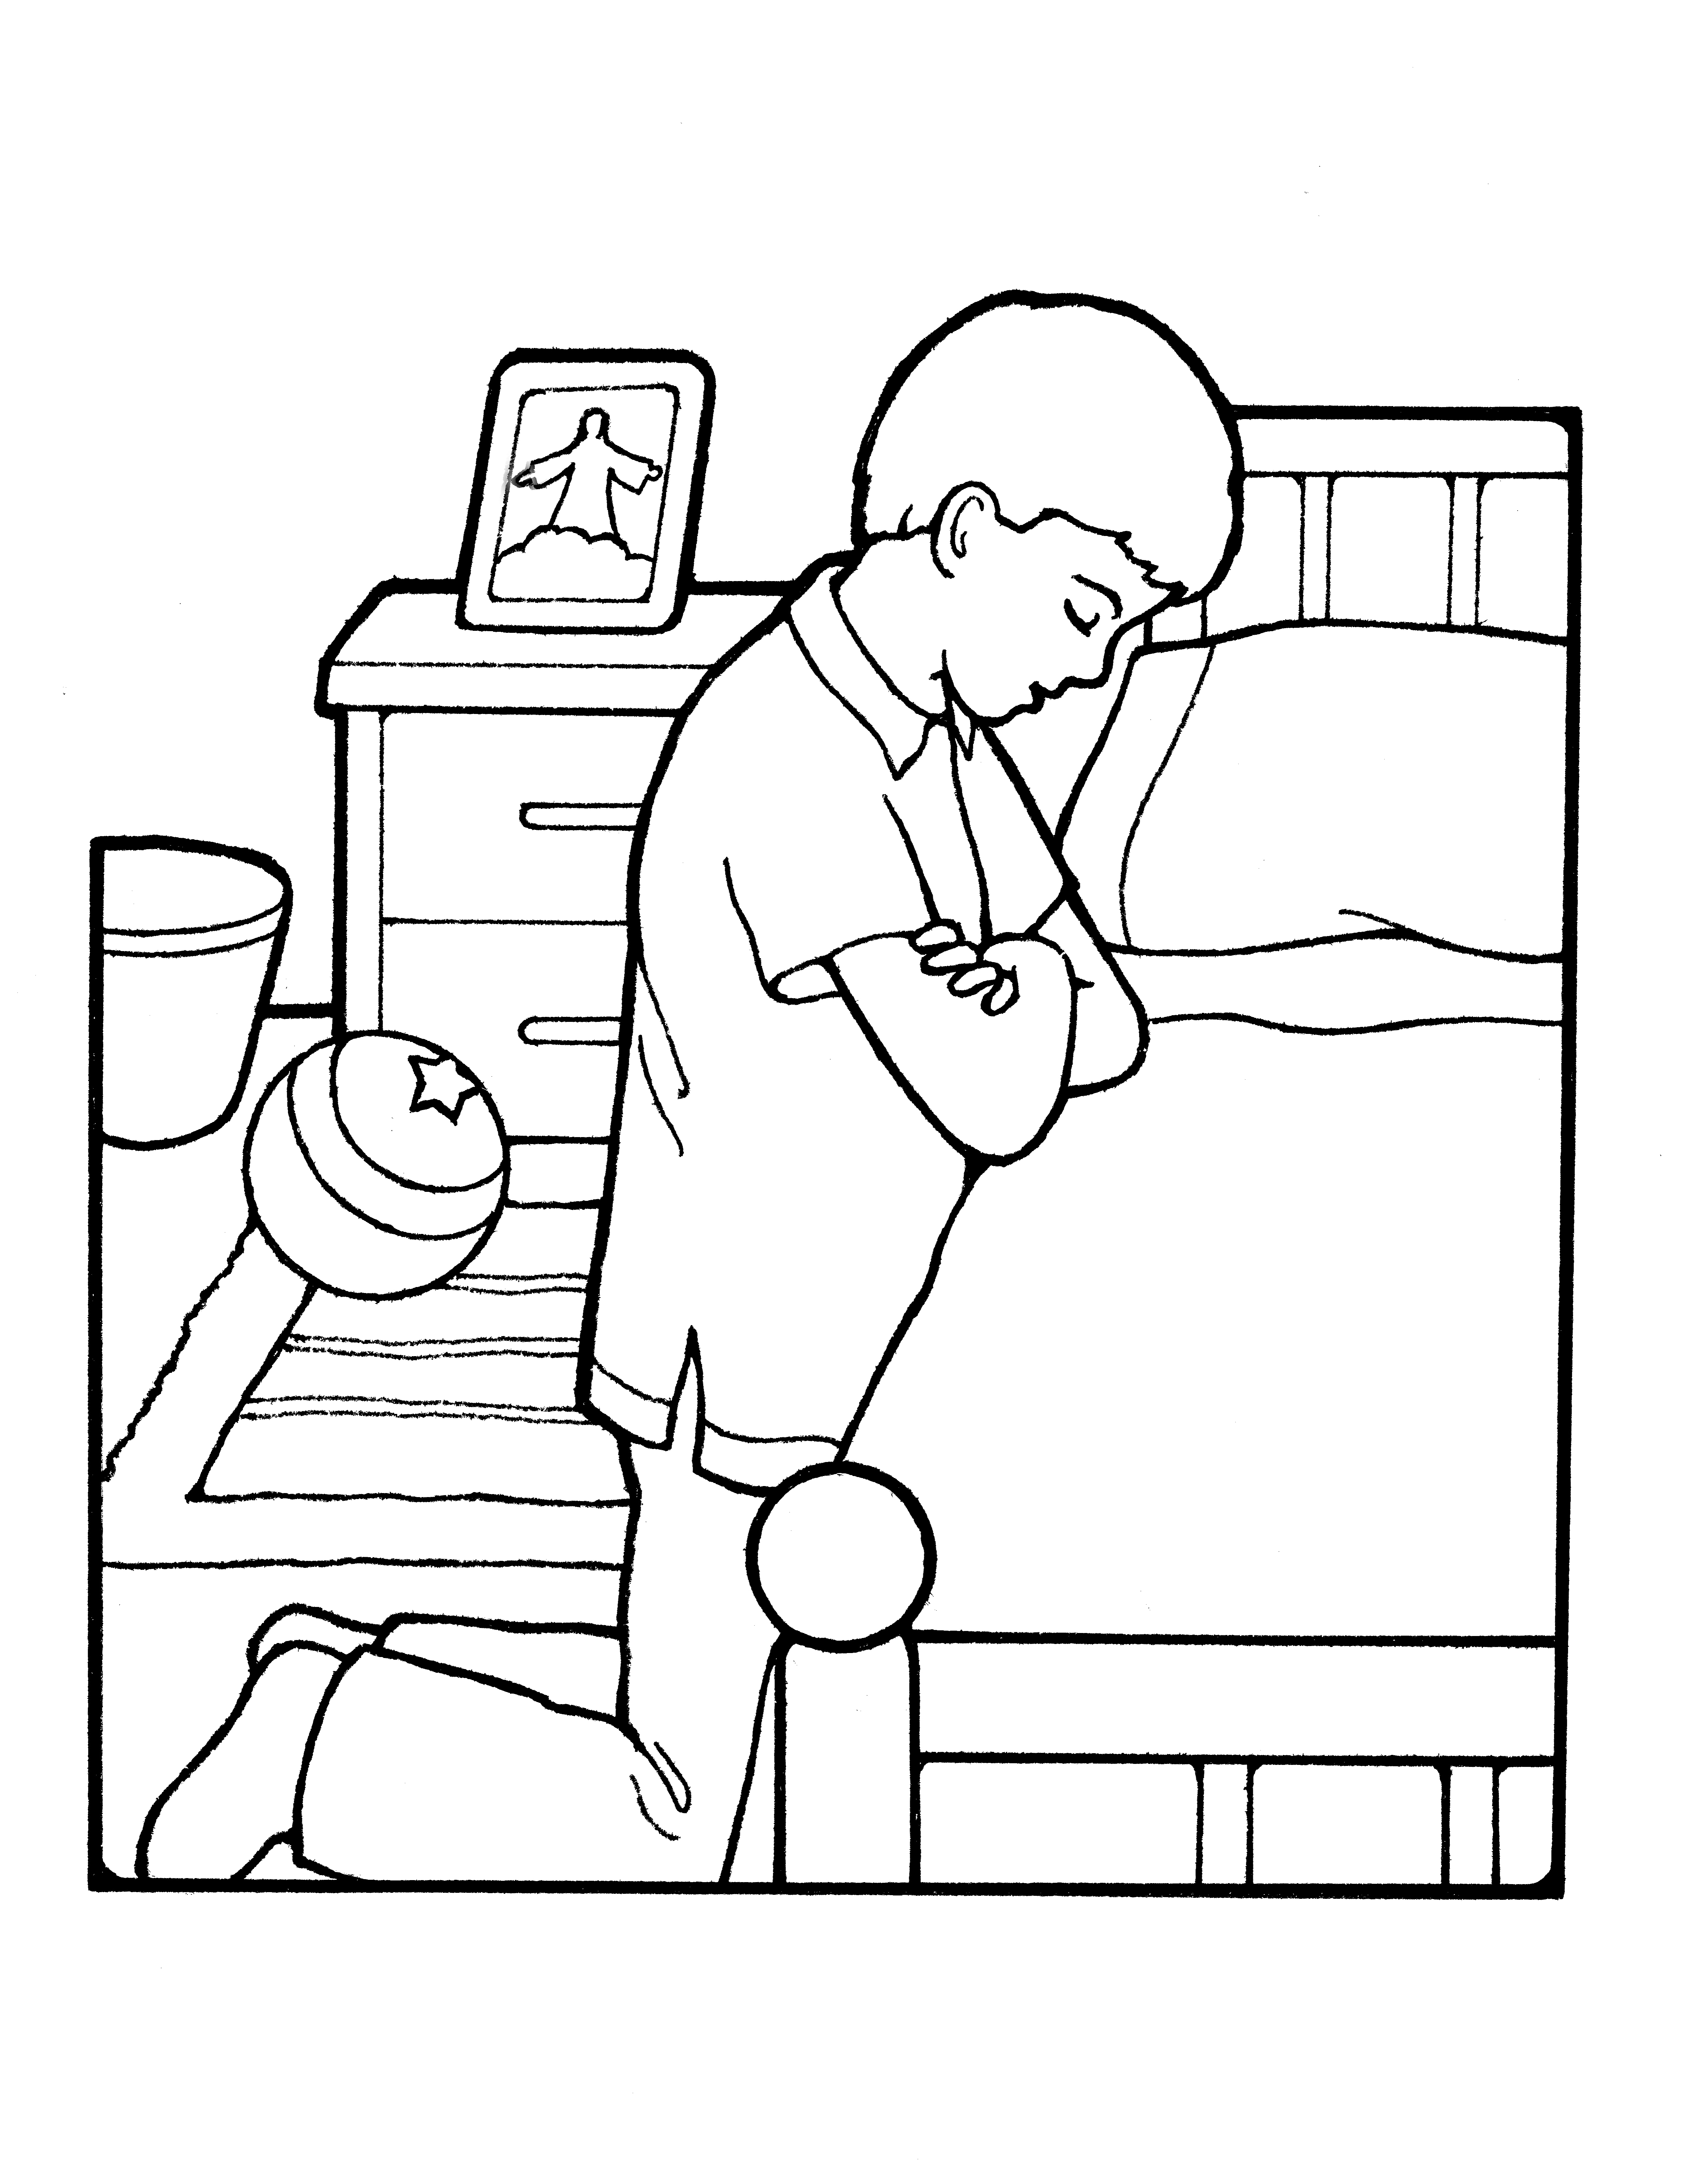 A line drawing of a boy praying near his bedside.